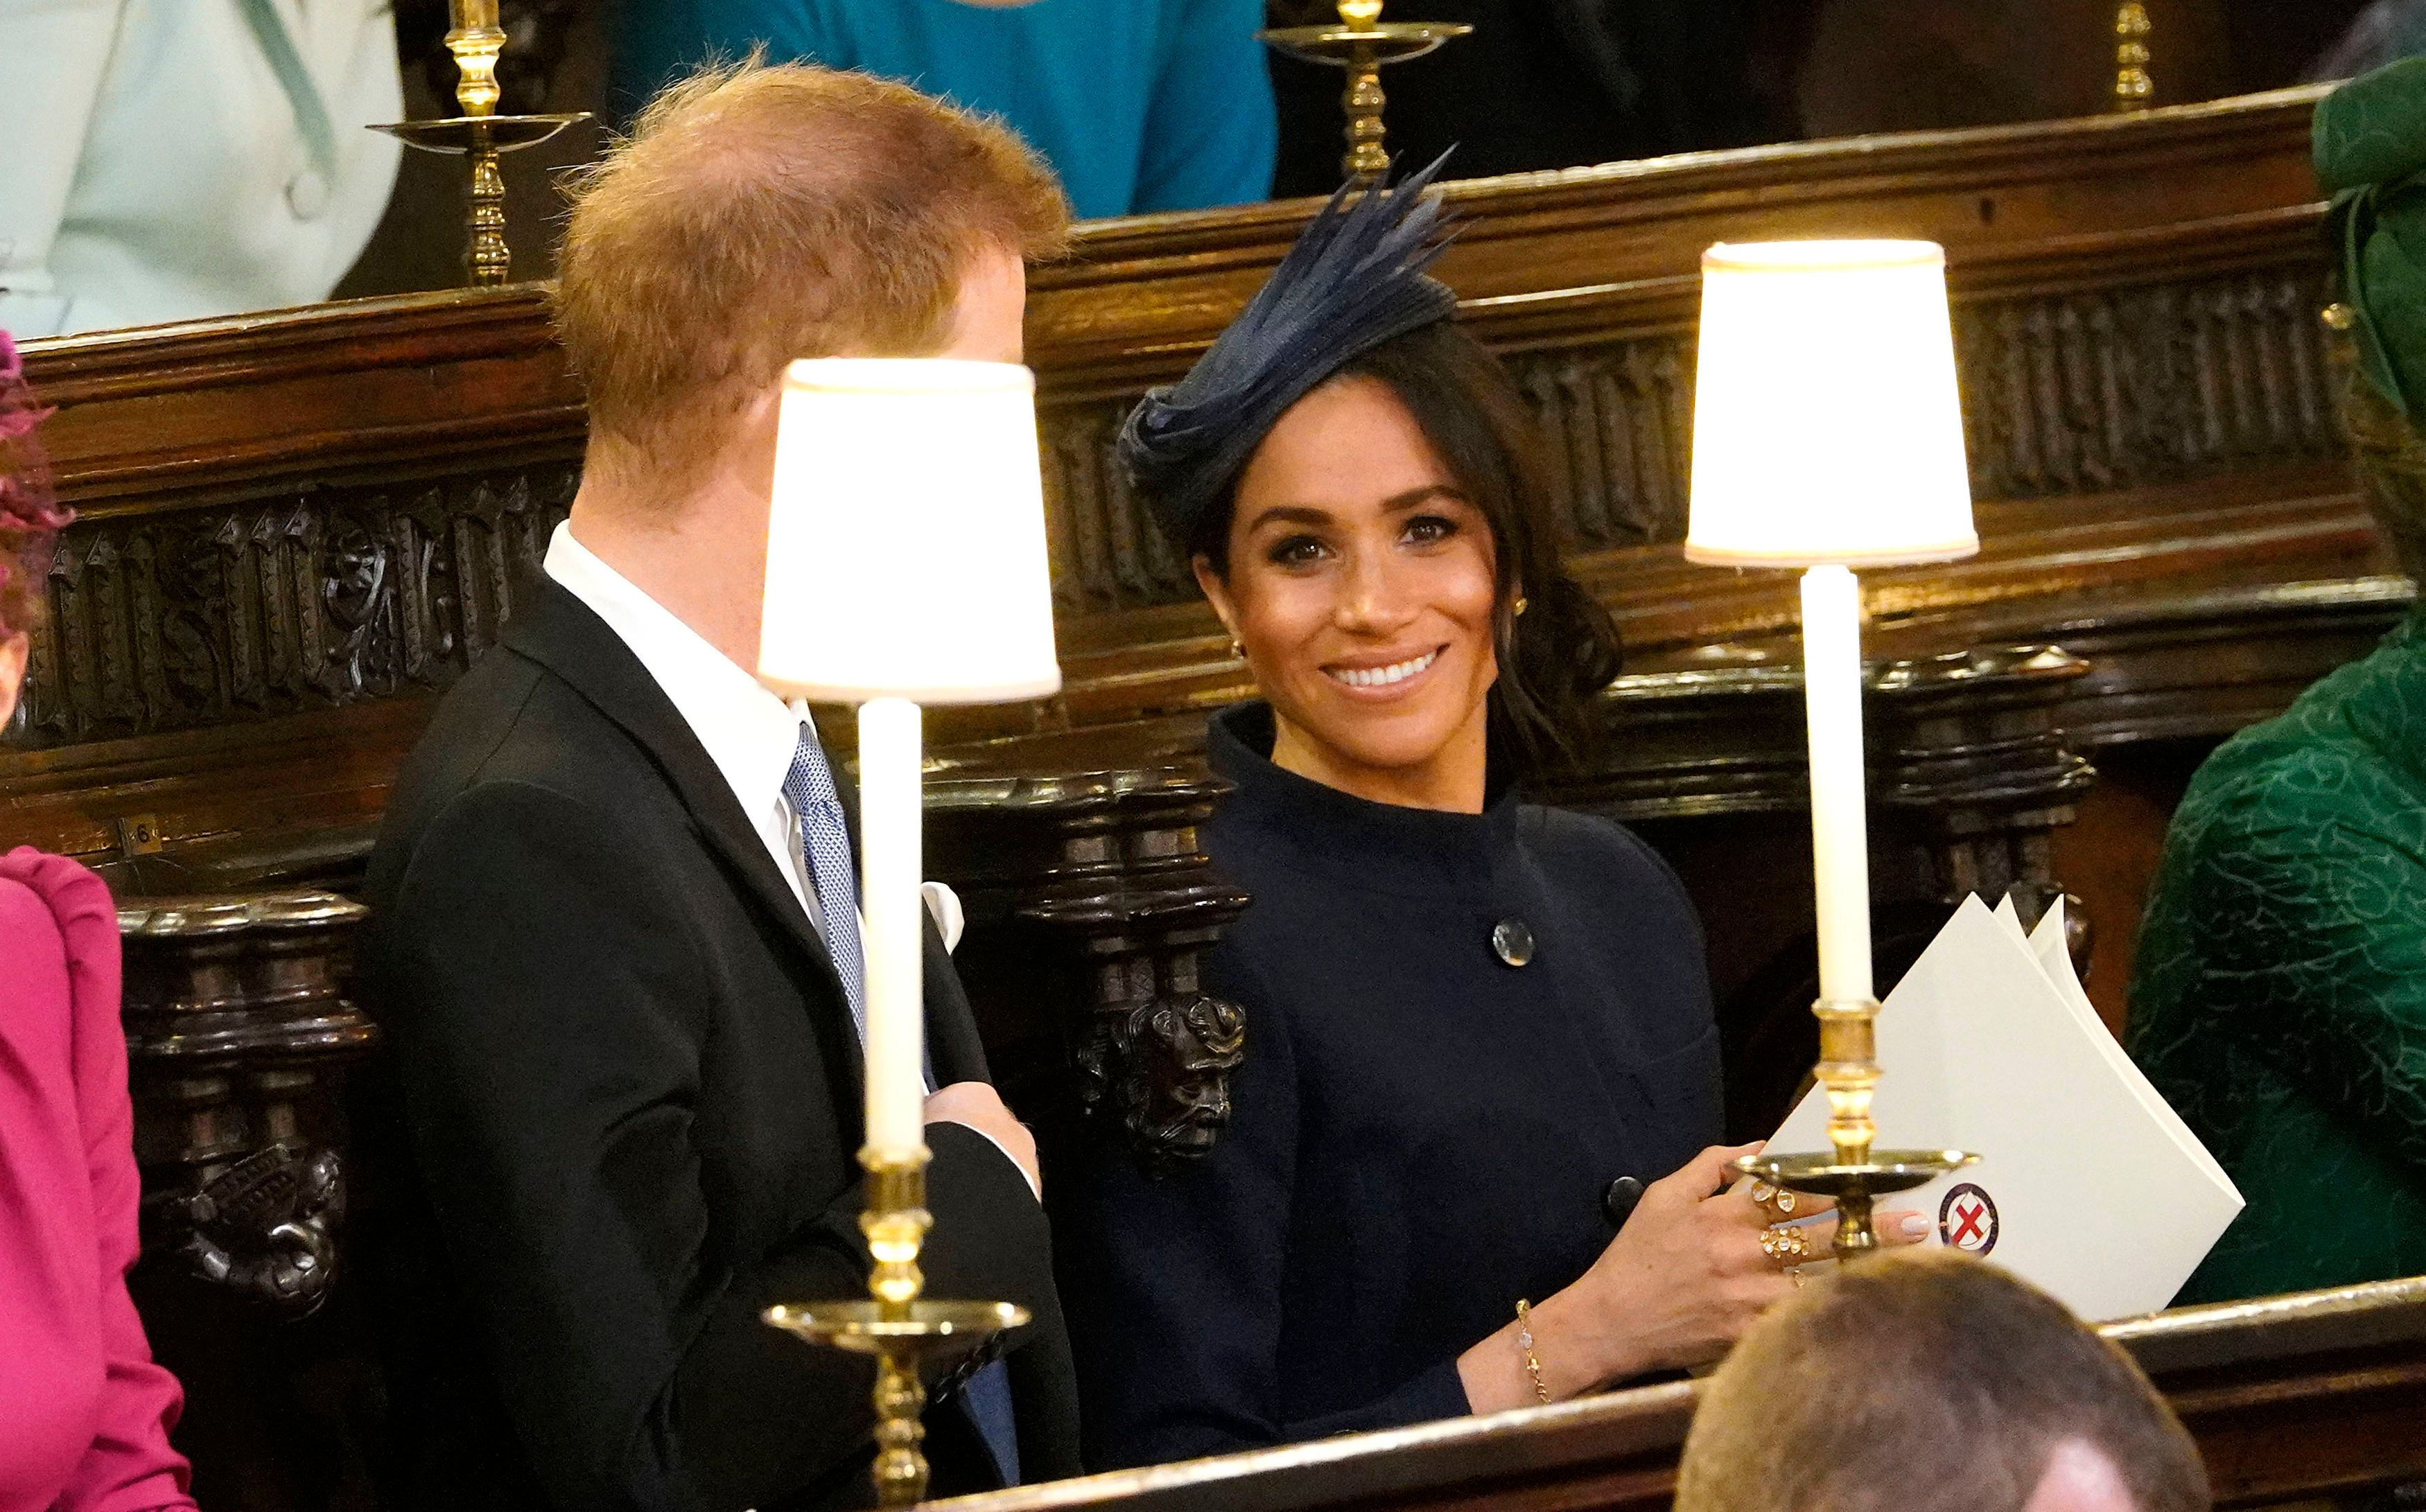 The Duke and Duchess of Sussex take their seats ahead of the wedding of Princess Eugenie to Jack Brooksbank at St George's Chapel in Windsor Castle.